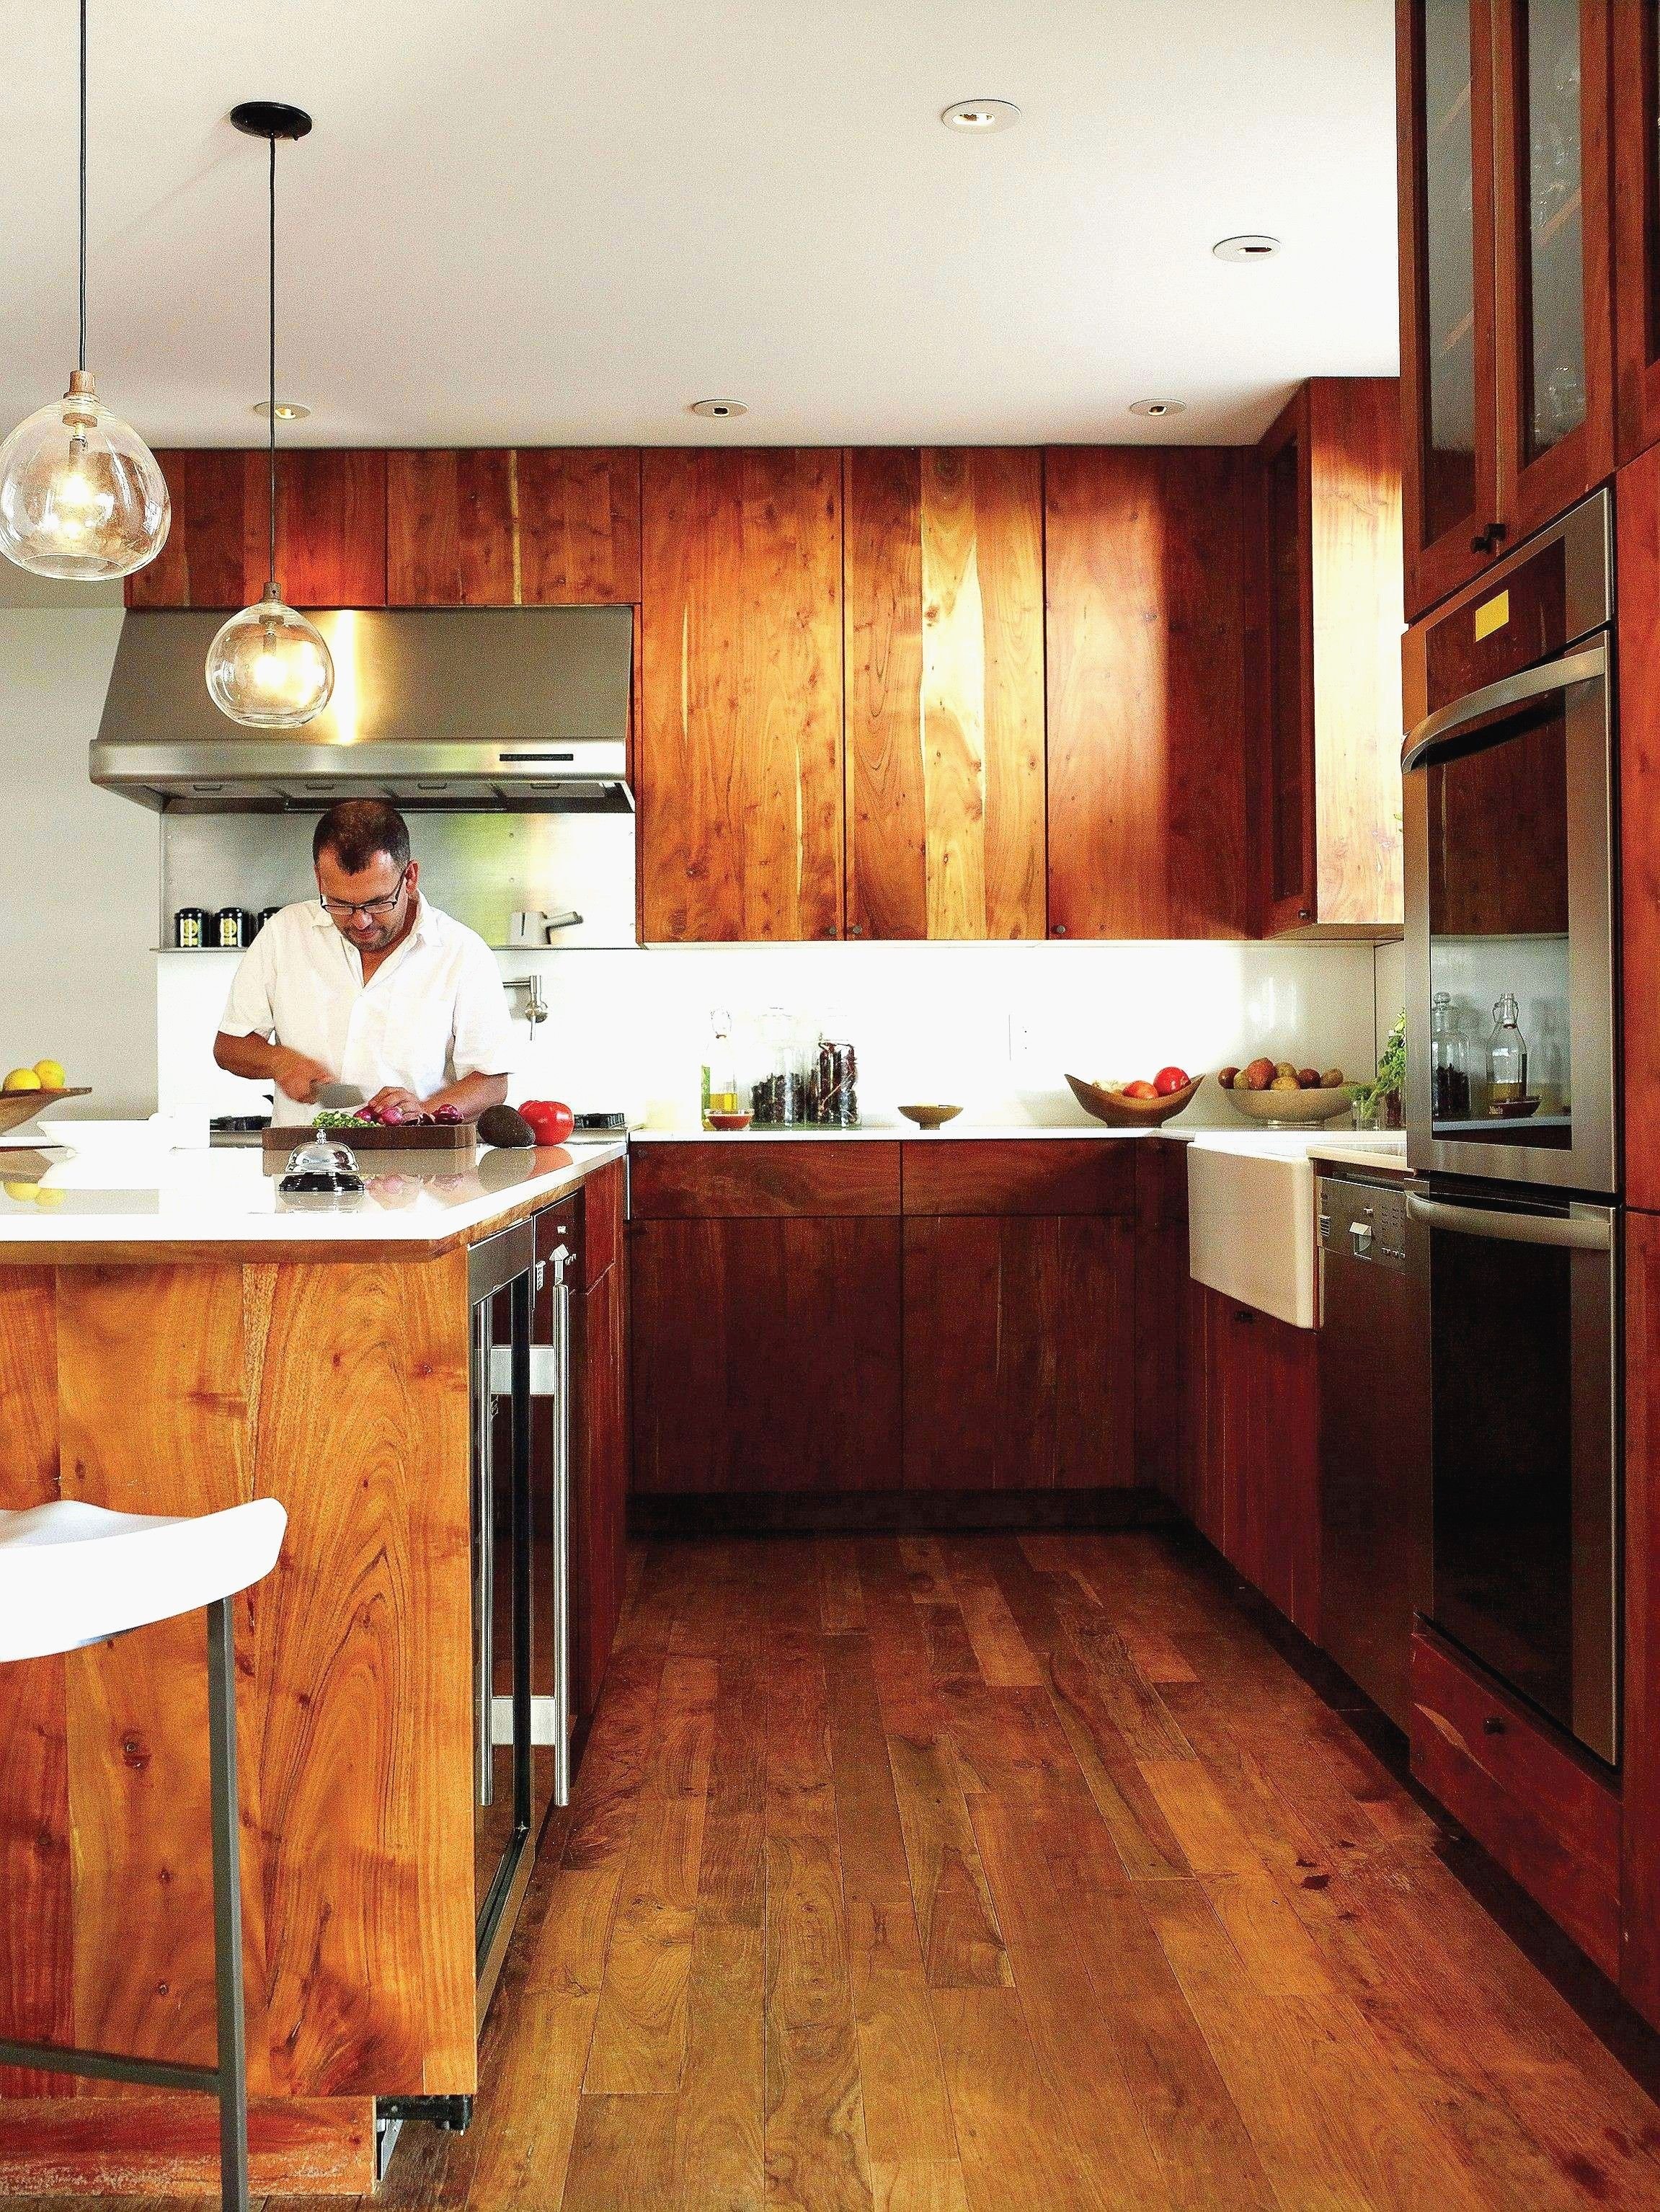 Easy Way To Make Own Kitchen Cabinets Elegant How To Make Your Own Kitchen Cabinets Step By Step The